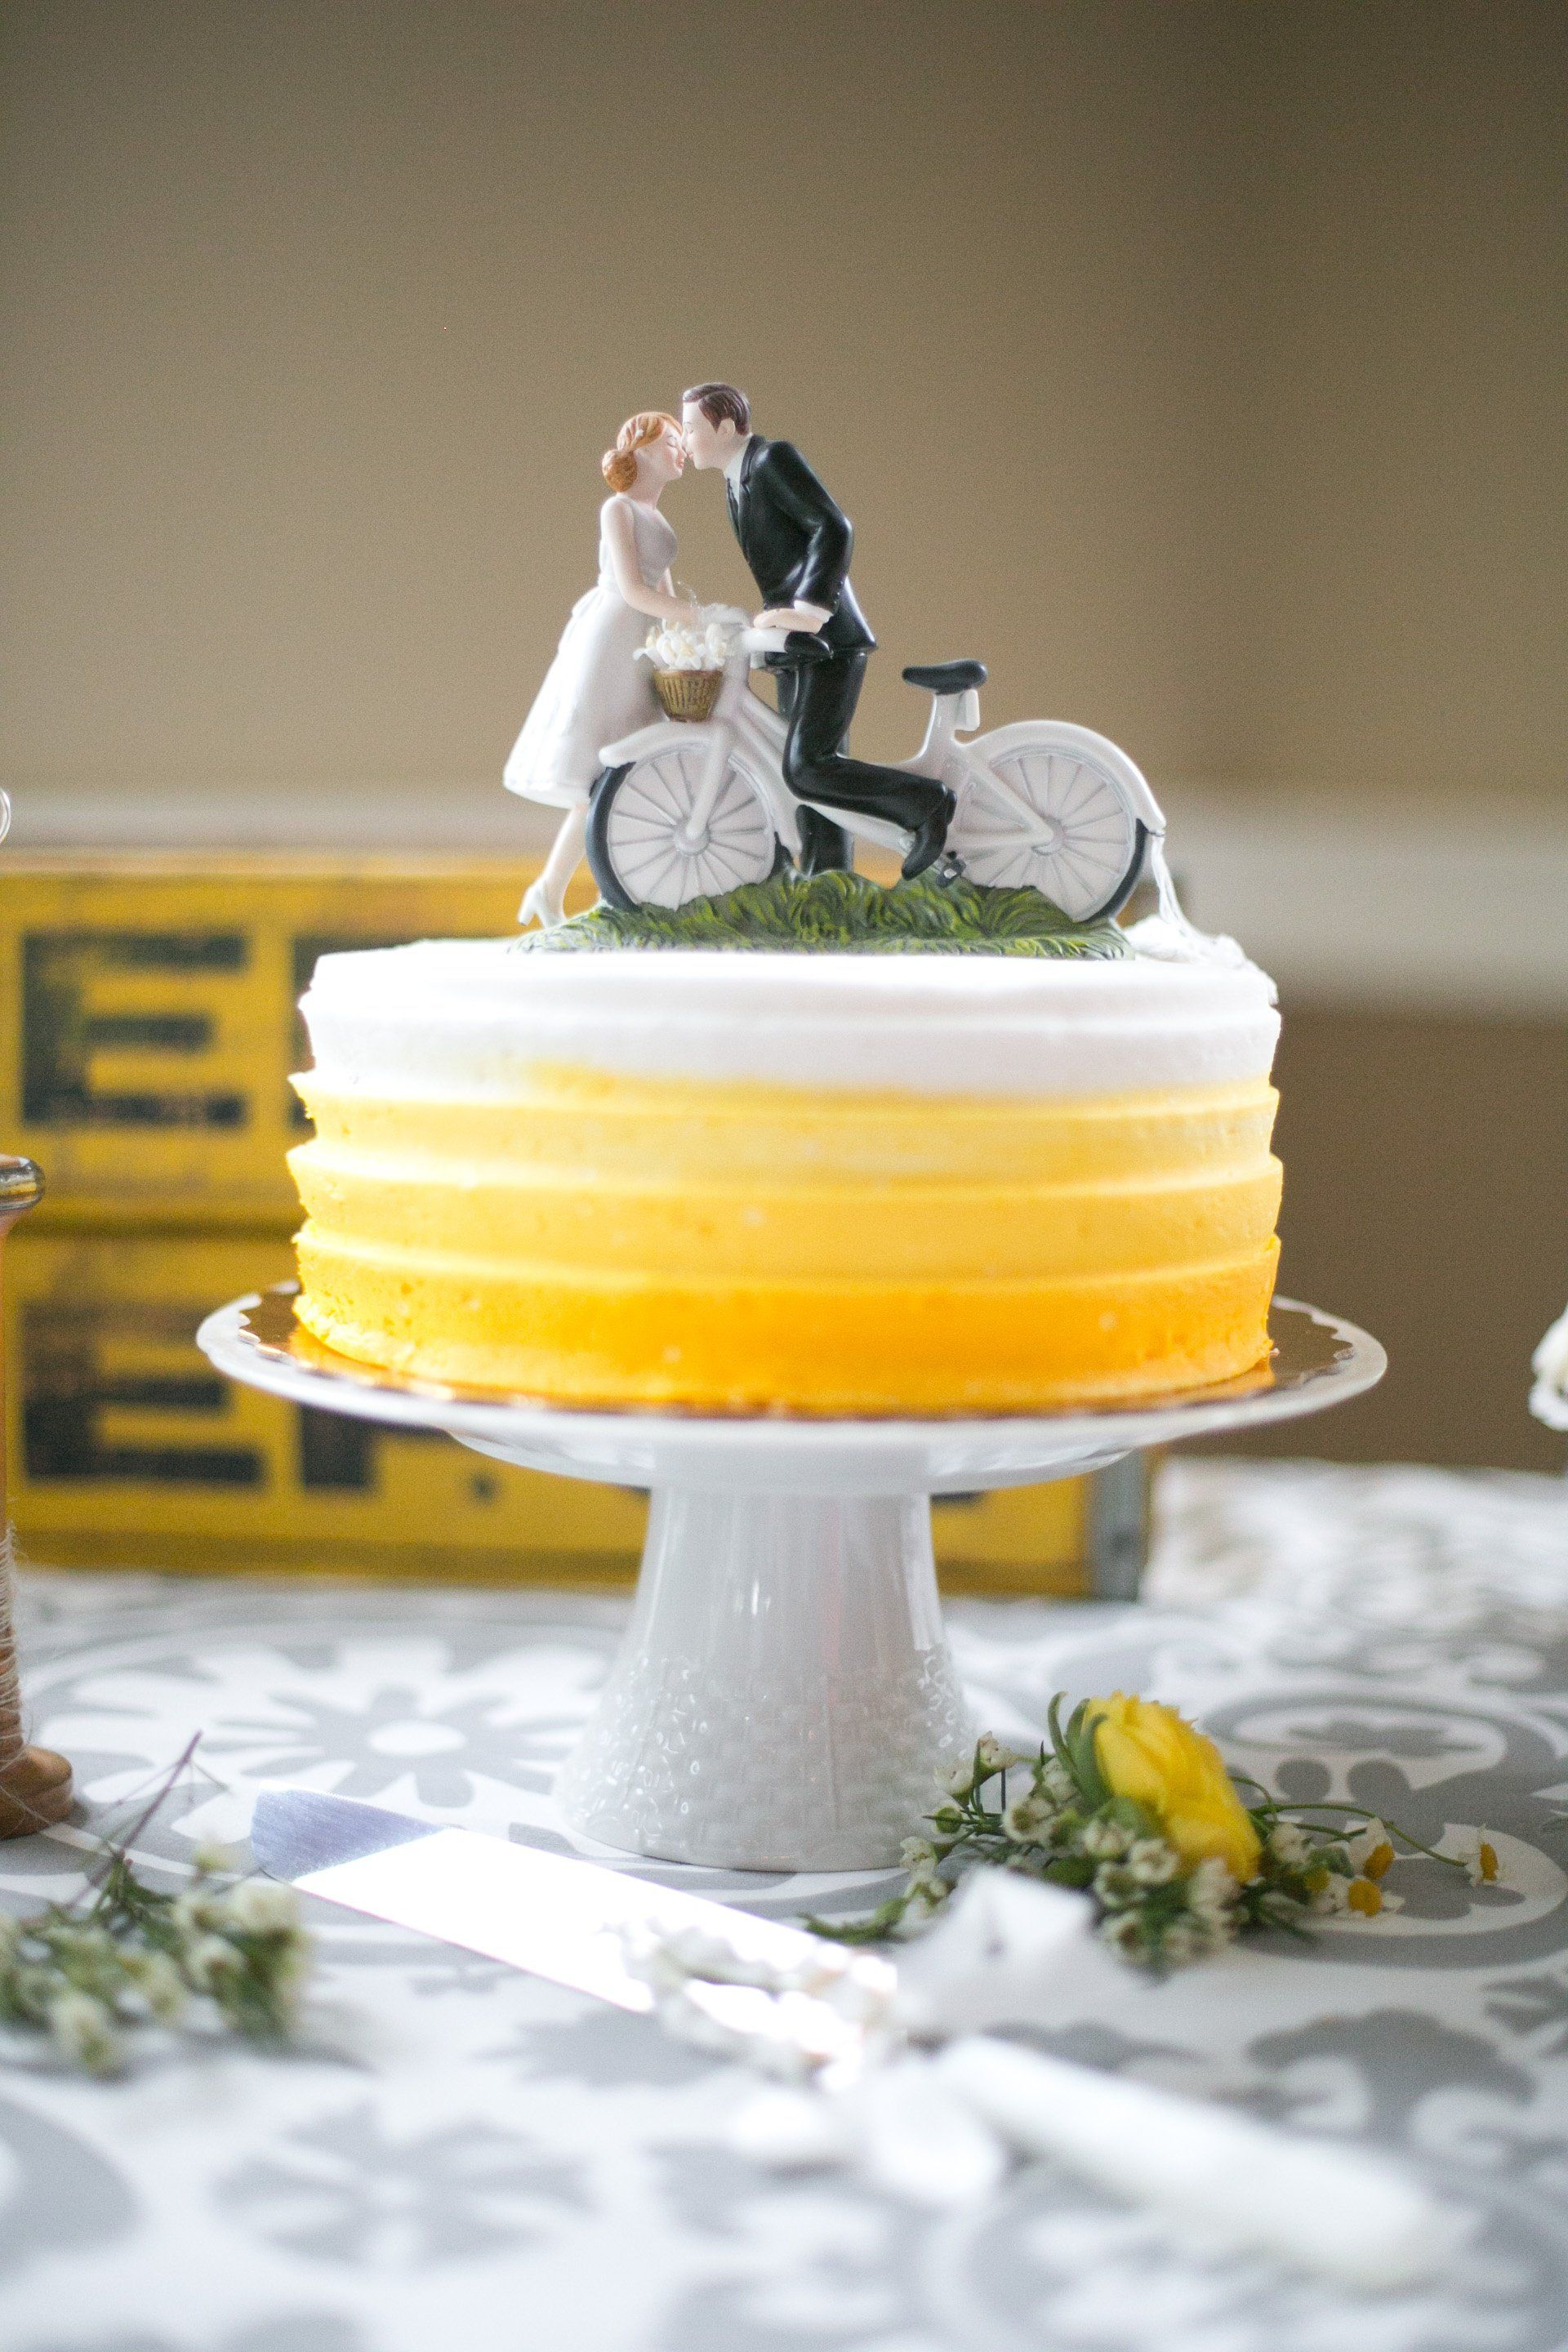 Yellow Ombre Wedding Cake | "|1920|2880|?|a574af89f648232ff5116d5e1fcff175|False|UNLIKELY|0.34228235483169556